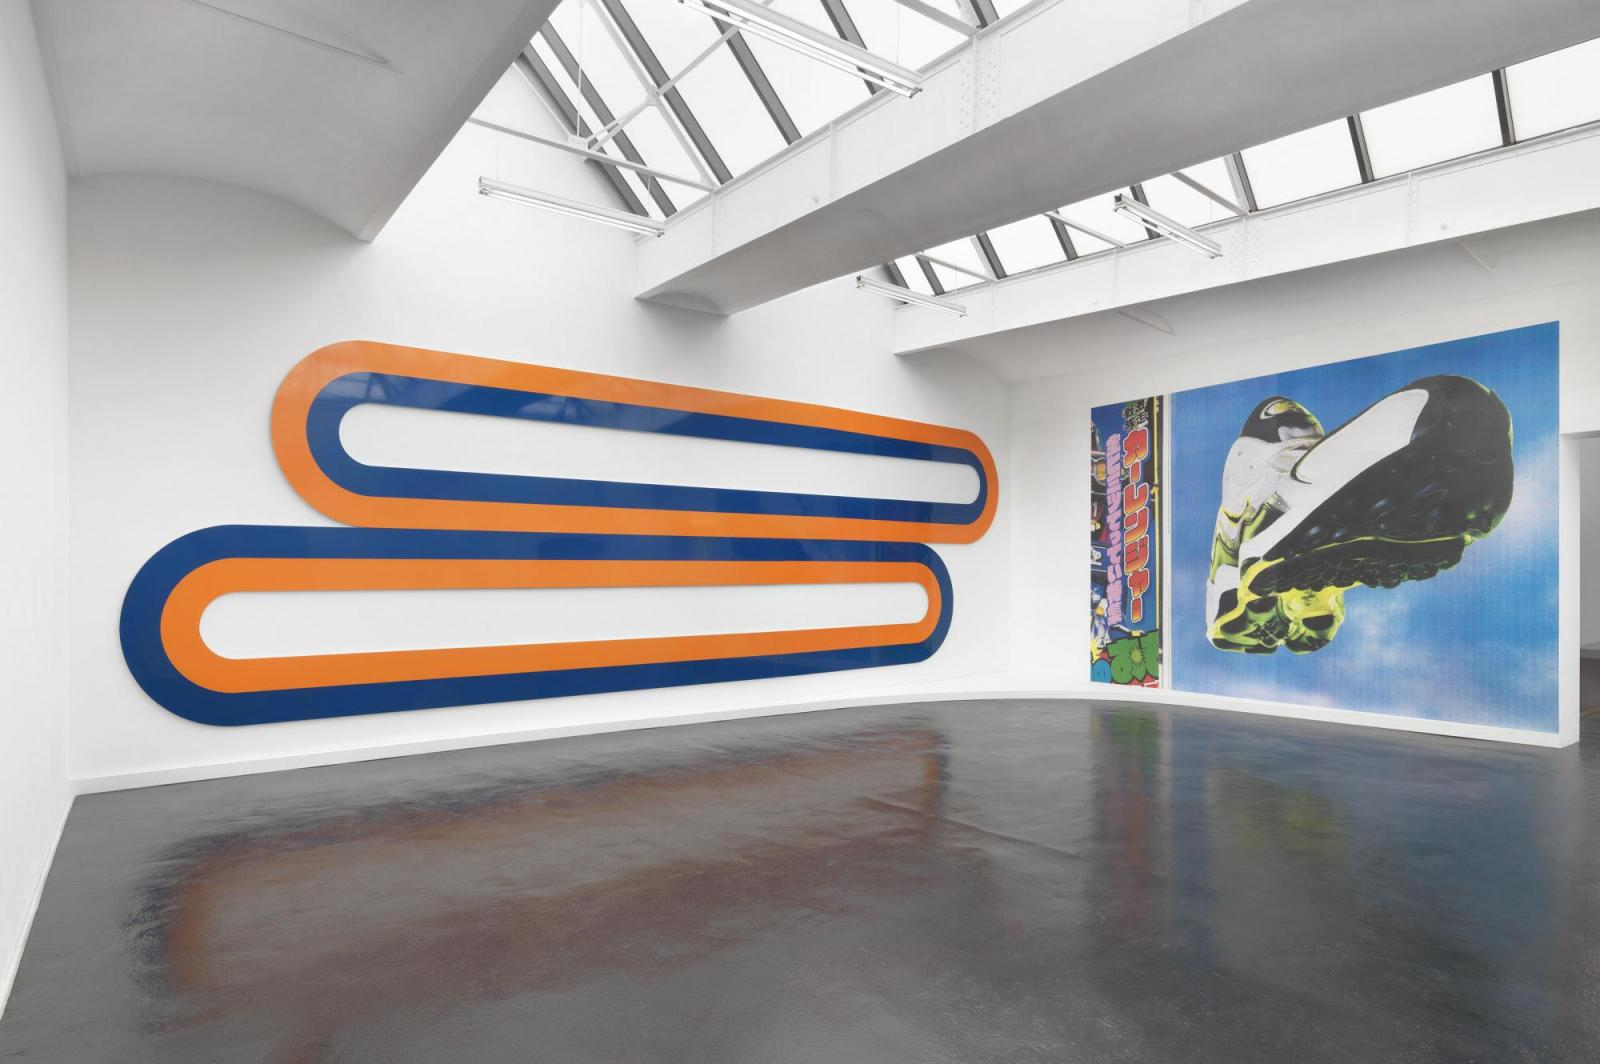 Michel Majerus /aluminium paintings/ installation view at neugerriemschneider